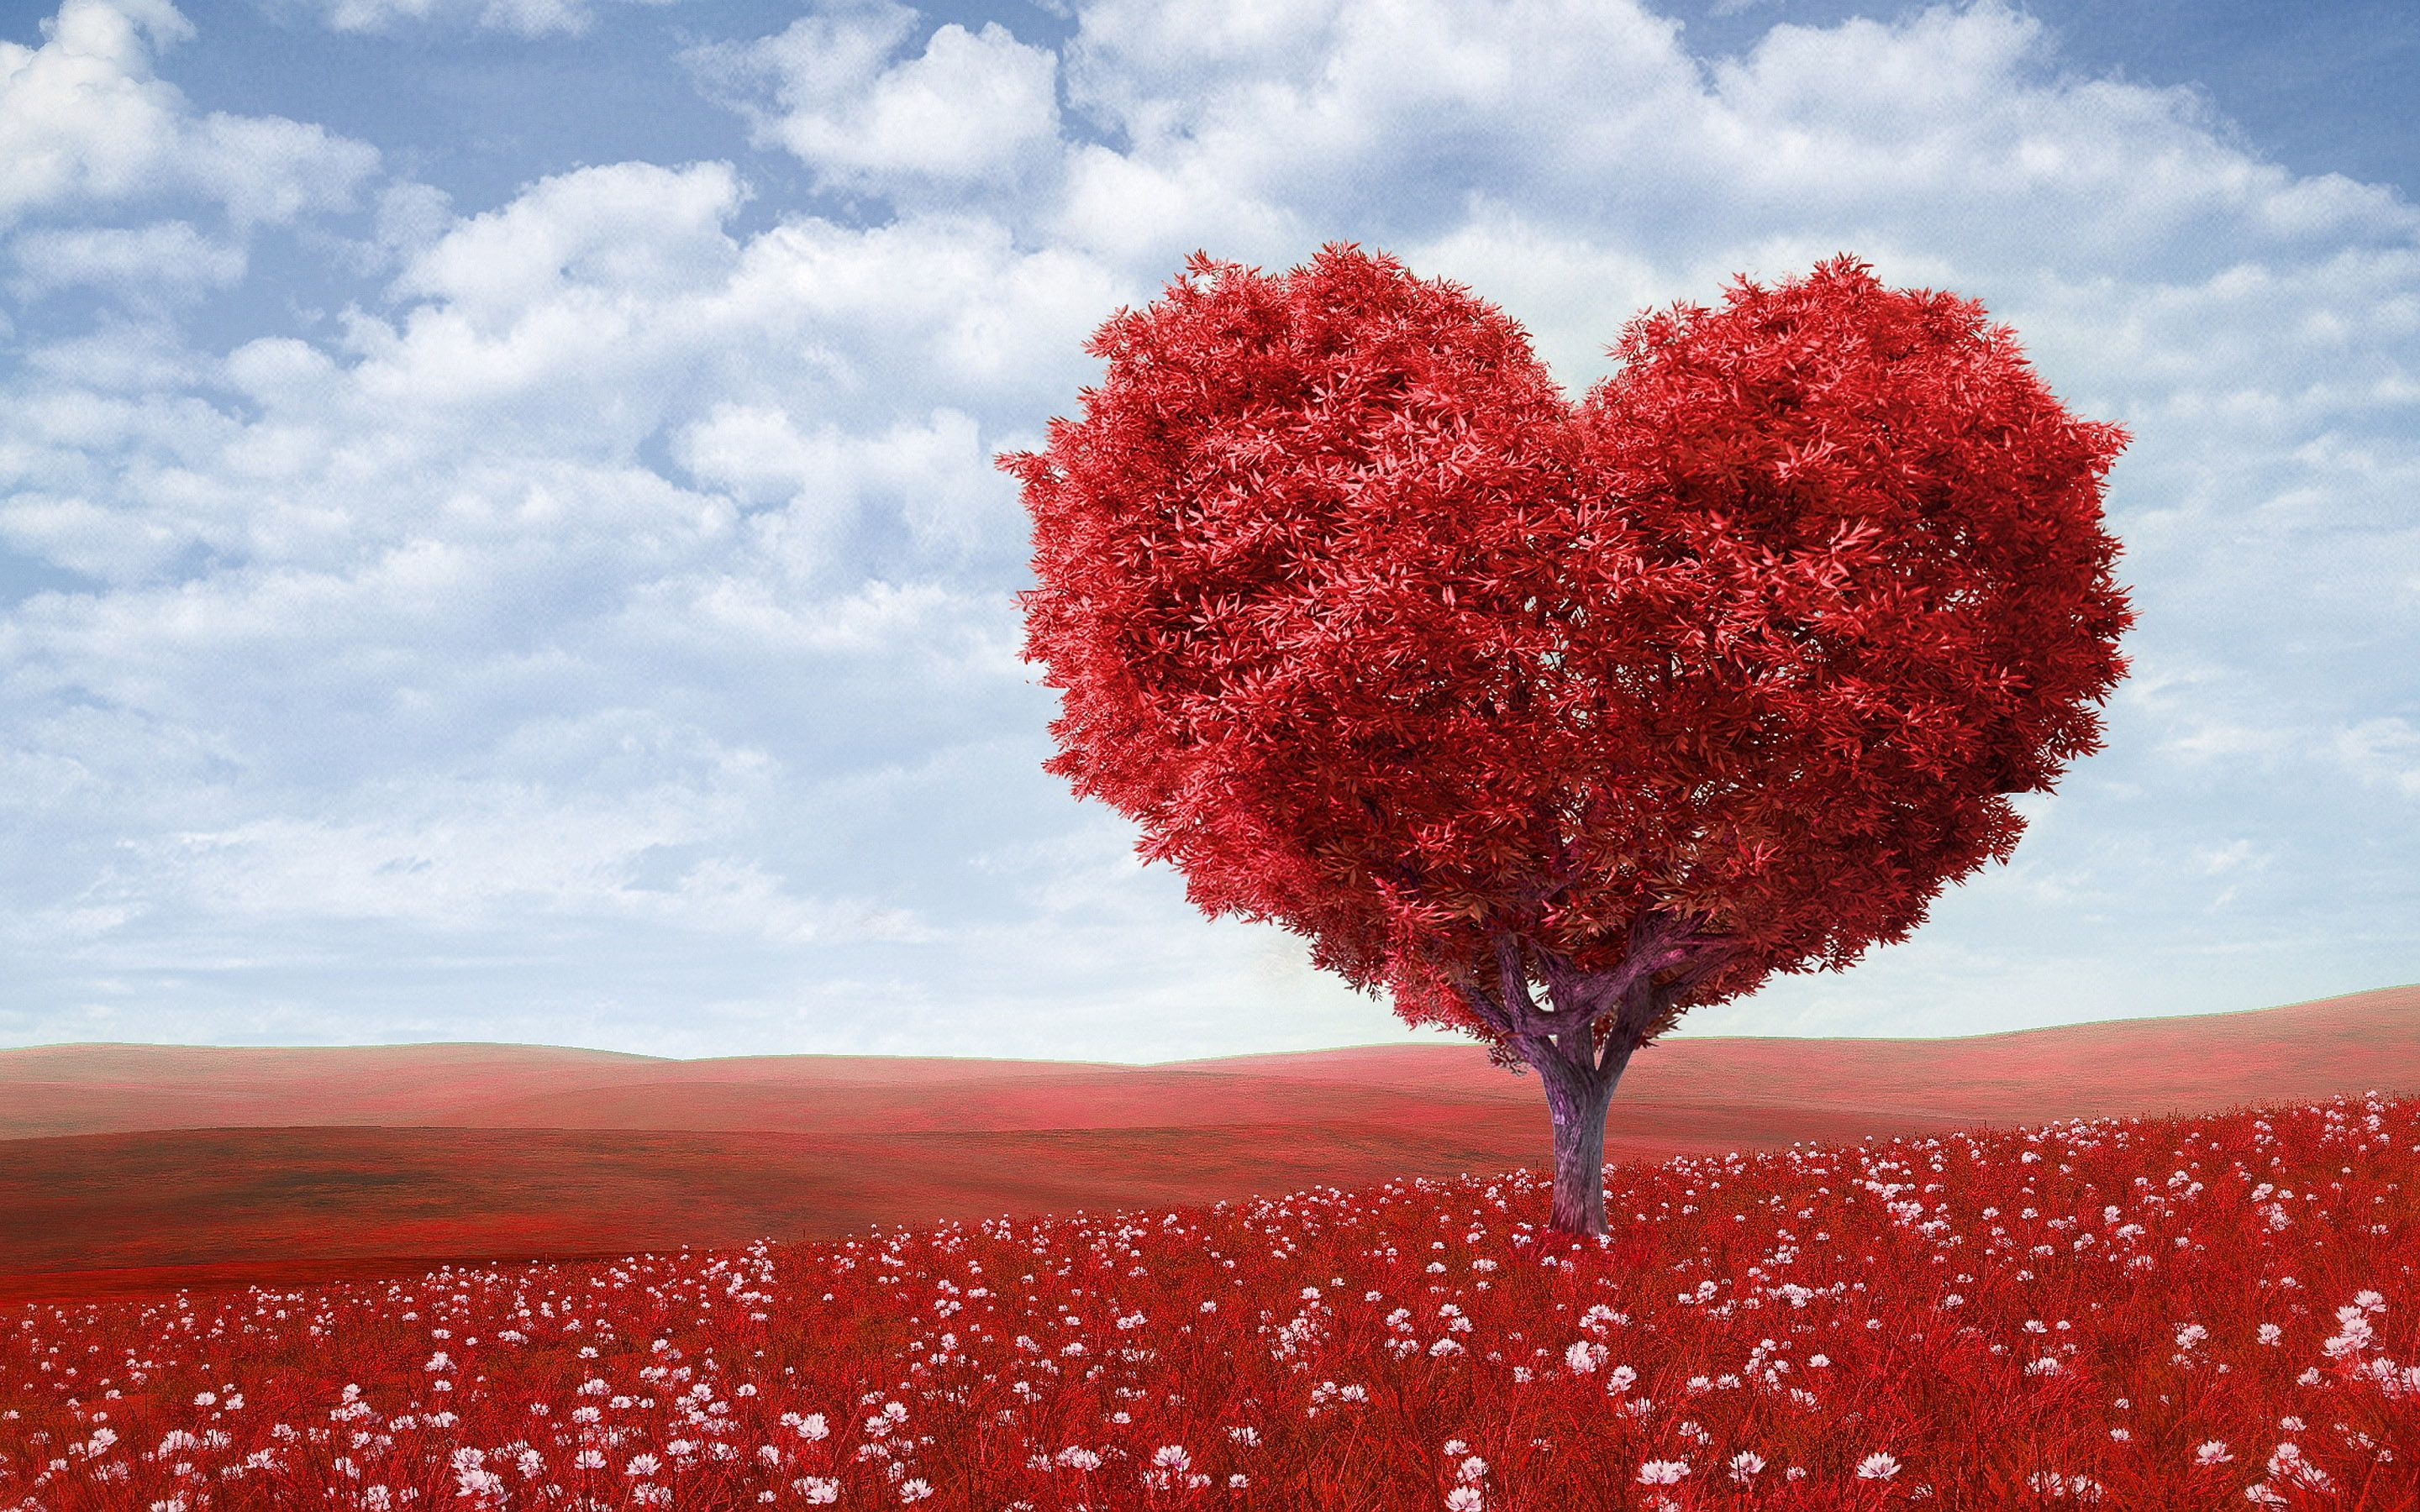 47 Outstanding Love Wallpapers For Couples To Download Heart Tree Love Wallpaper Love Images